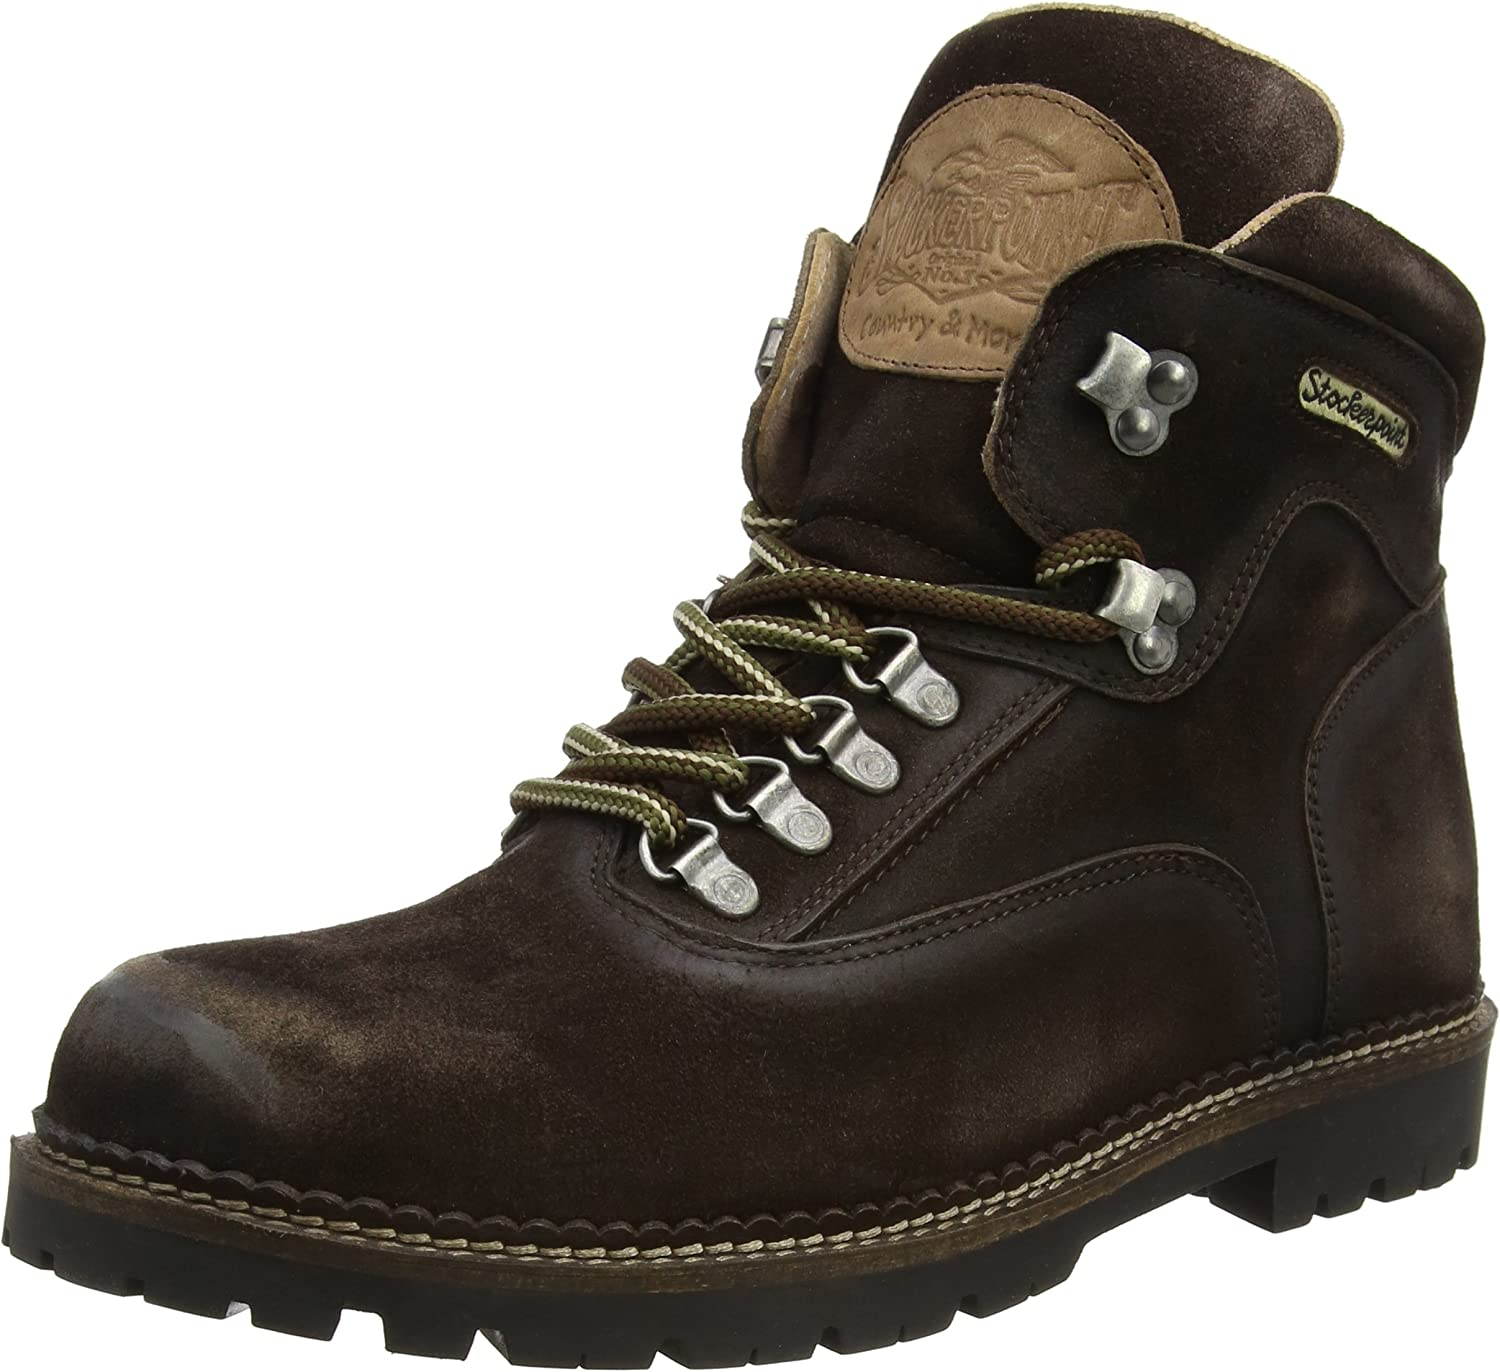 Stockerpoint 4460, Men's Cold Lined Classic Boots Short Length